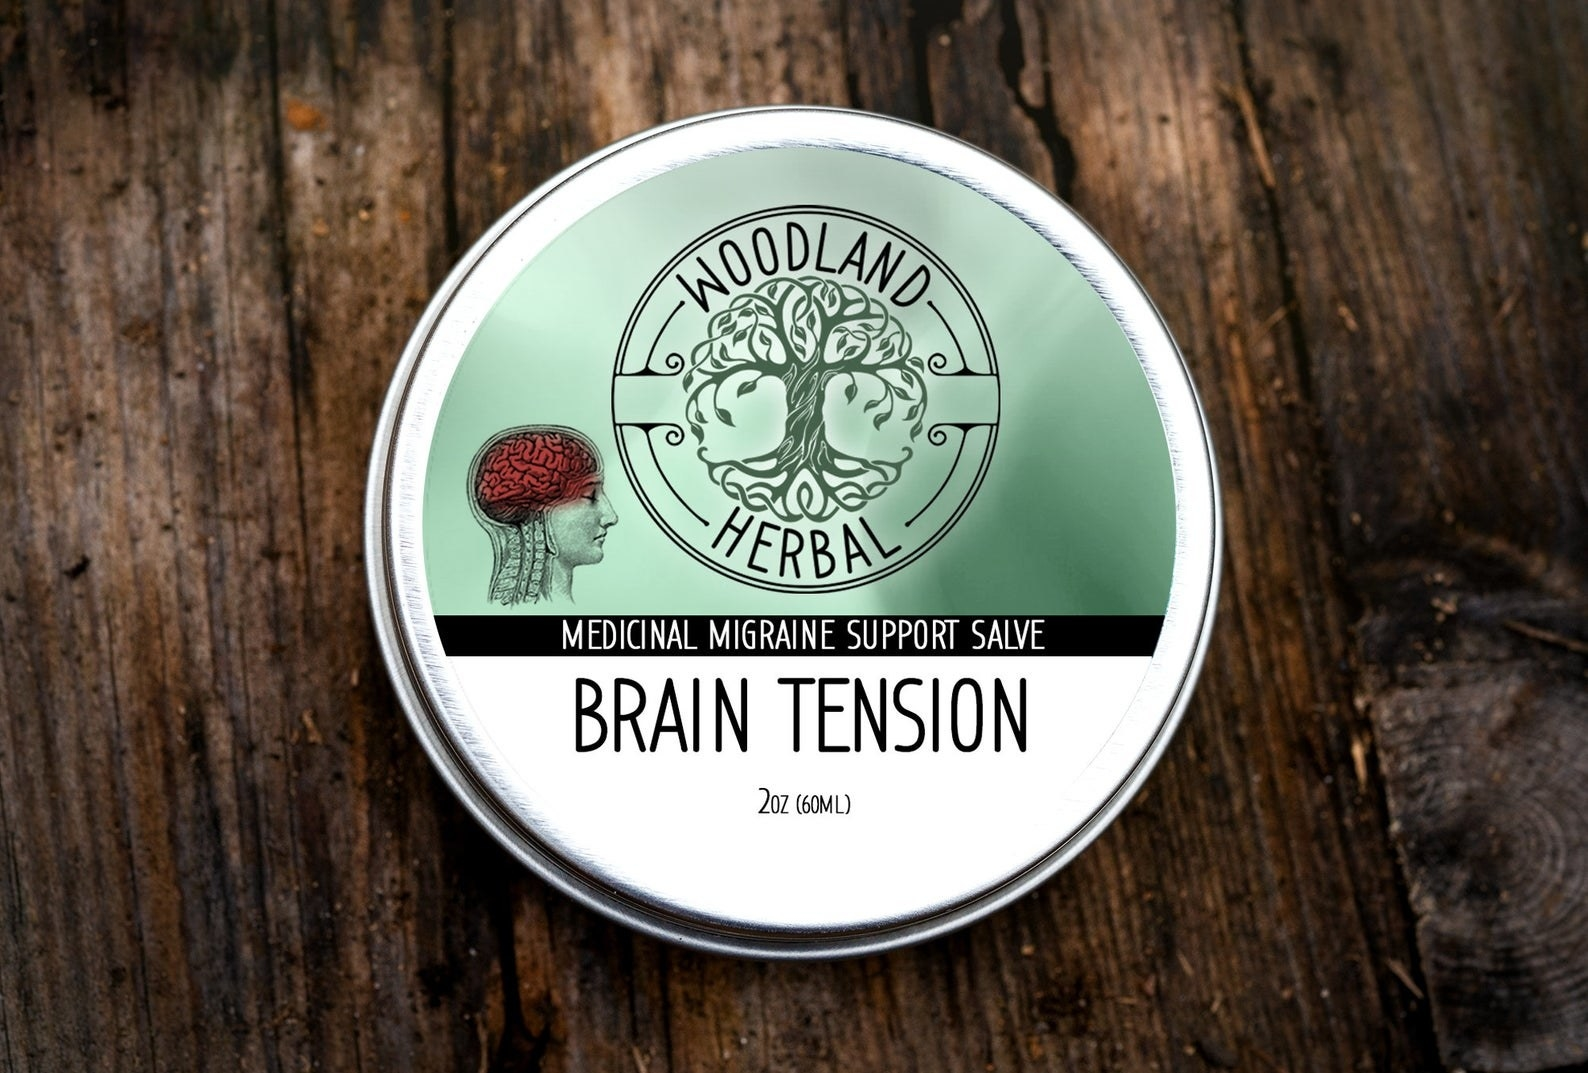 Brain tension salve in a metal container